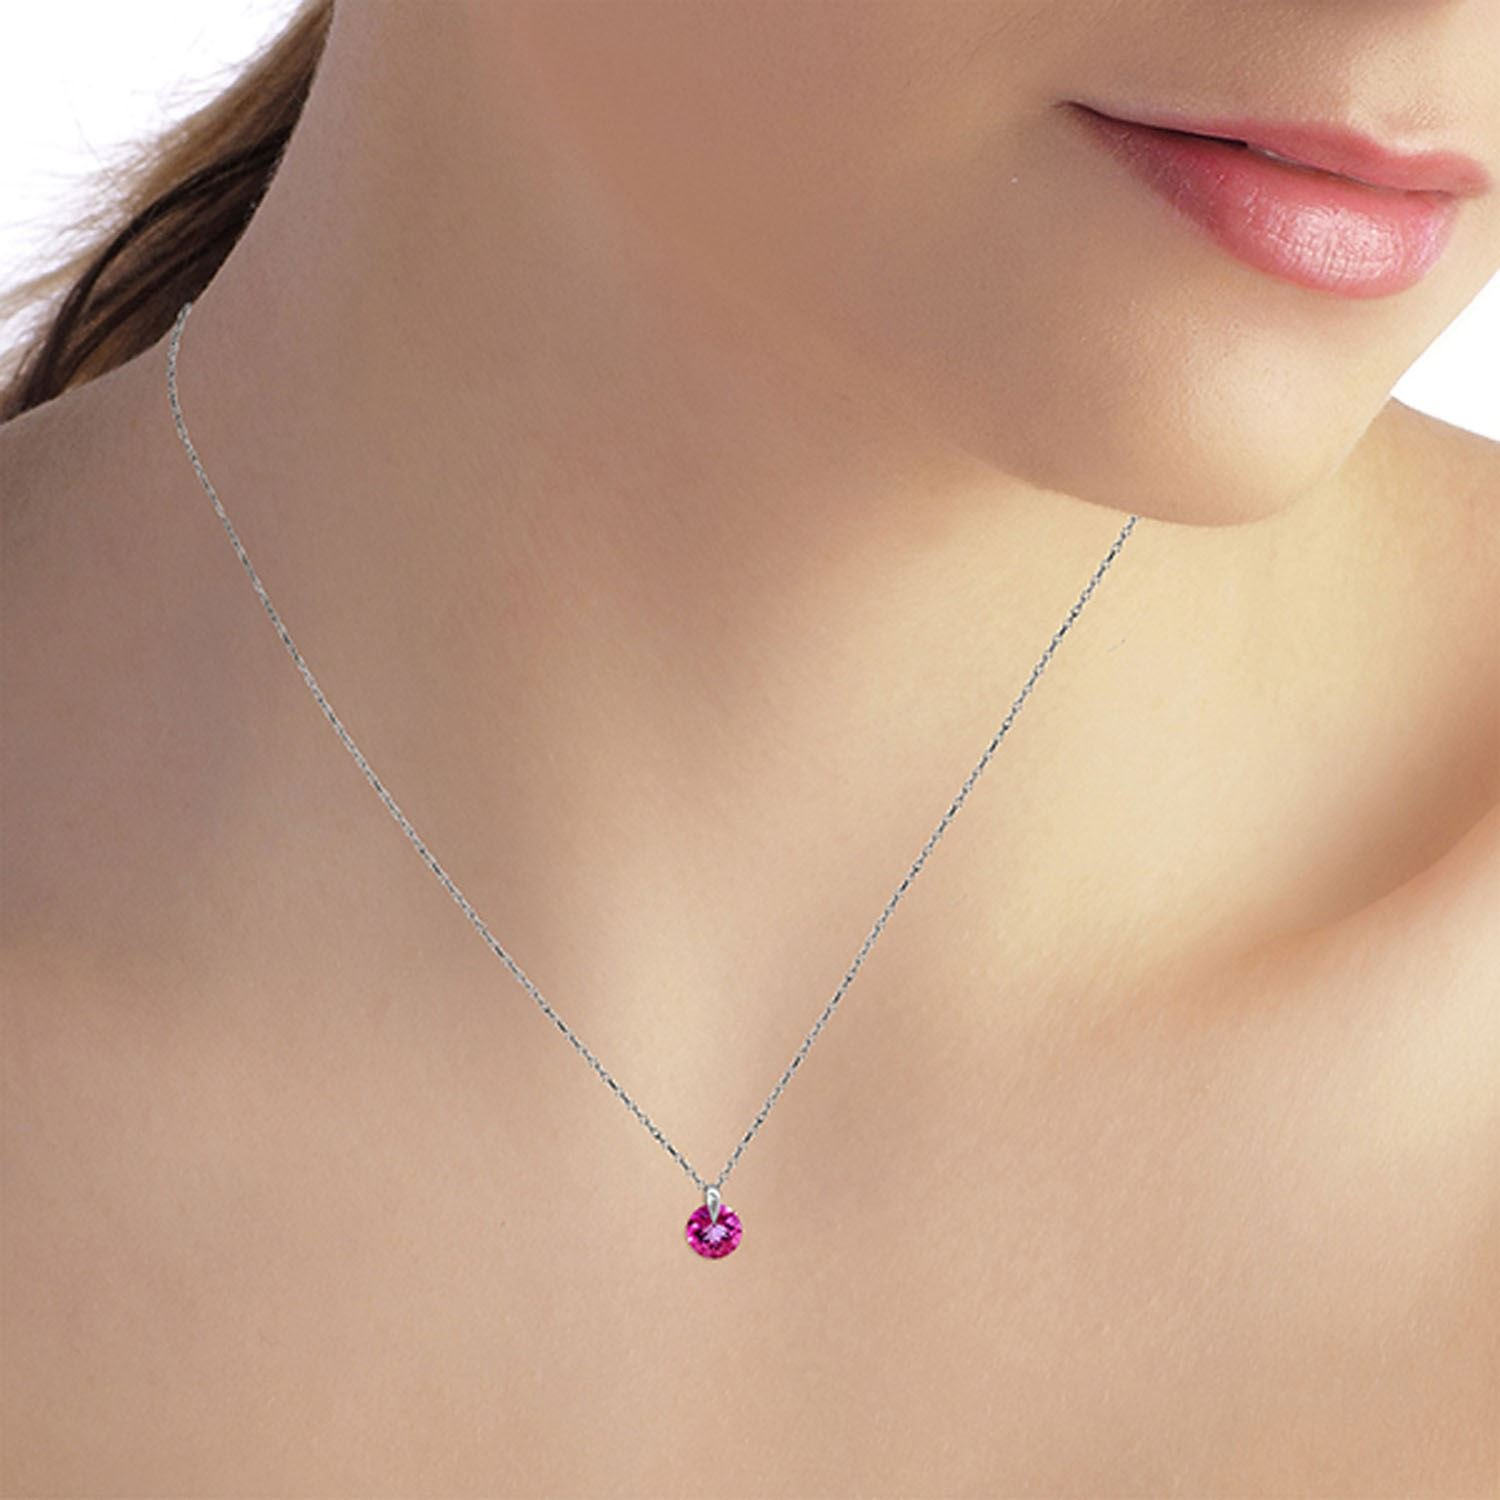 ALARRI 1 CTW 14K Solid White Gold Admitting How Pink Topaz Necklace with 20 Inch Chain Length